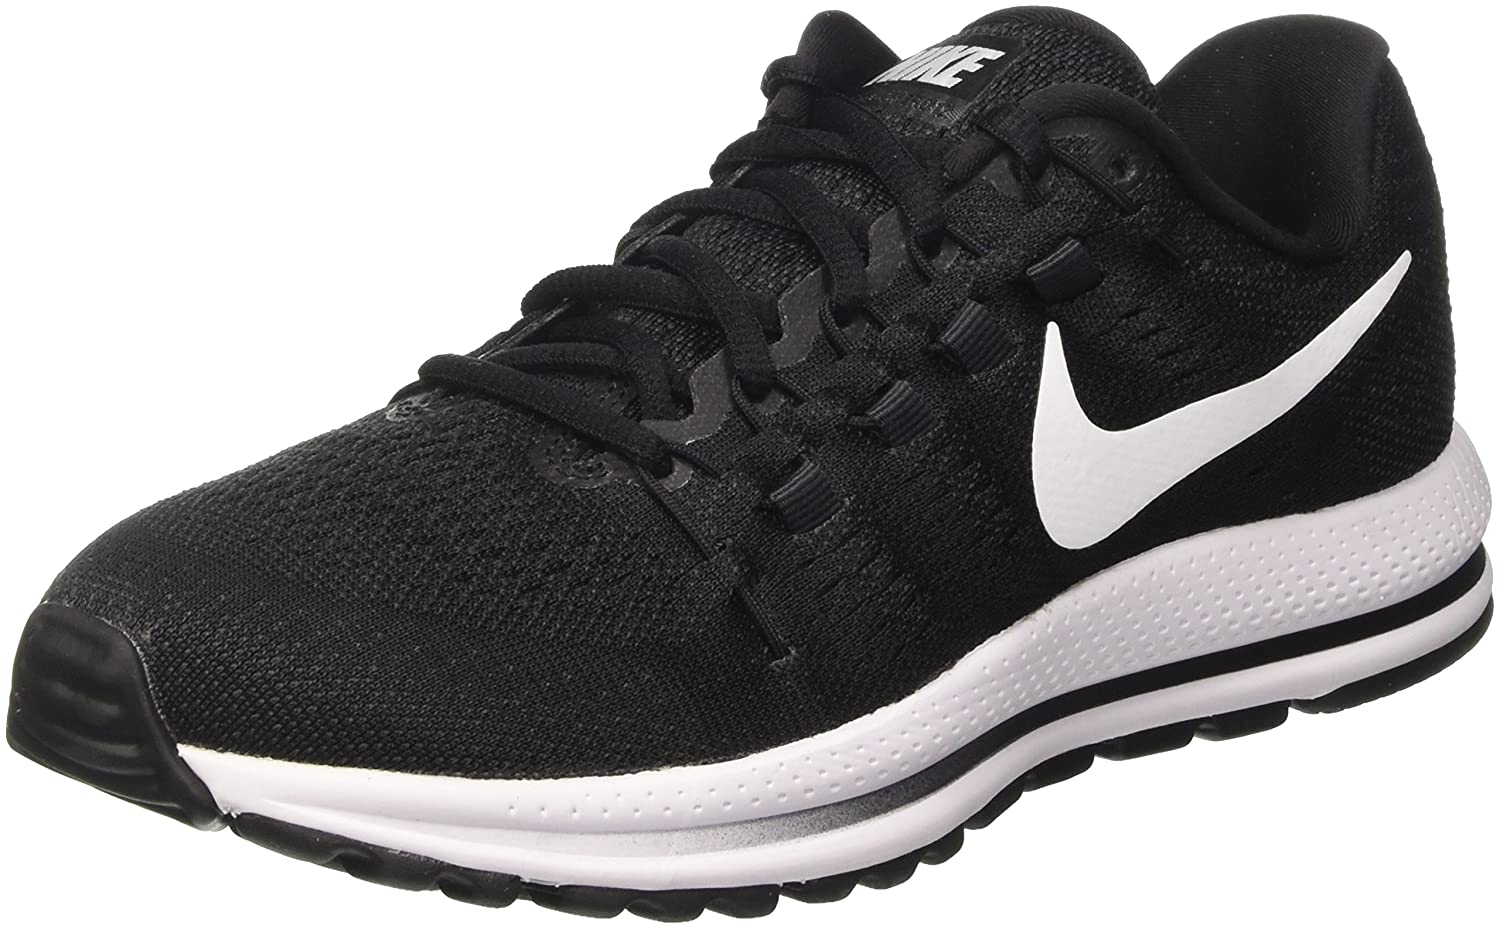 NIKE Men's Air Zoom Vomero 12 Running Shoe B000TSRLKU 7.5 D(M) US|Black/White/Anthracite